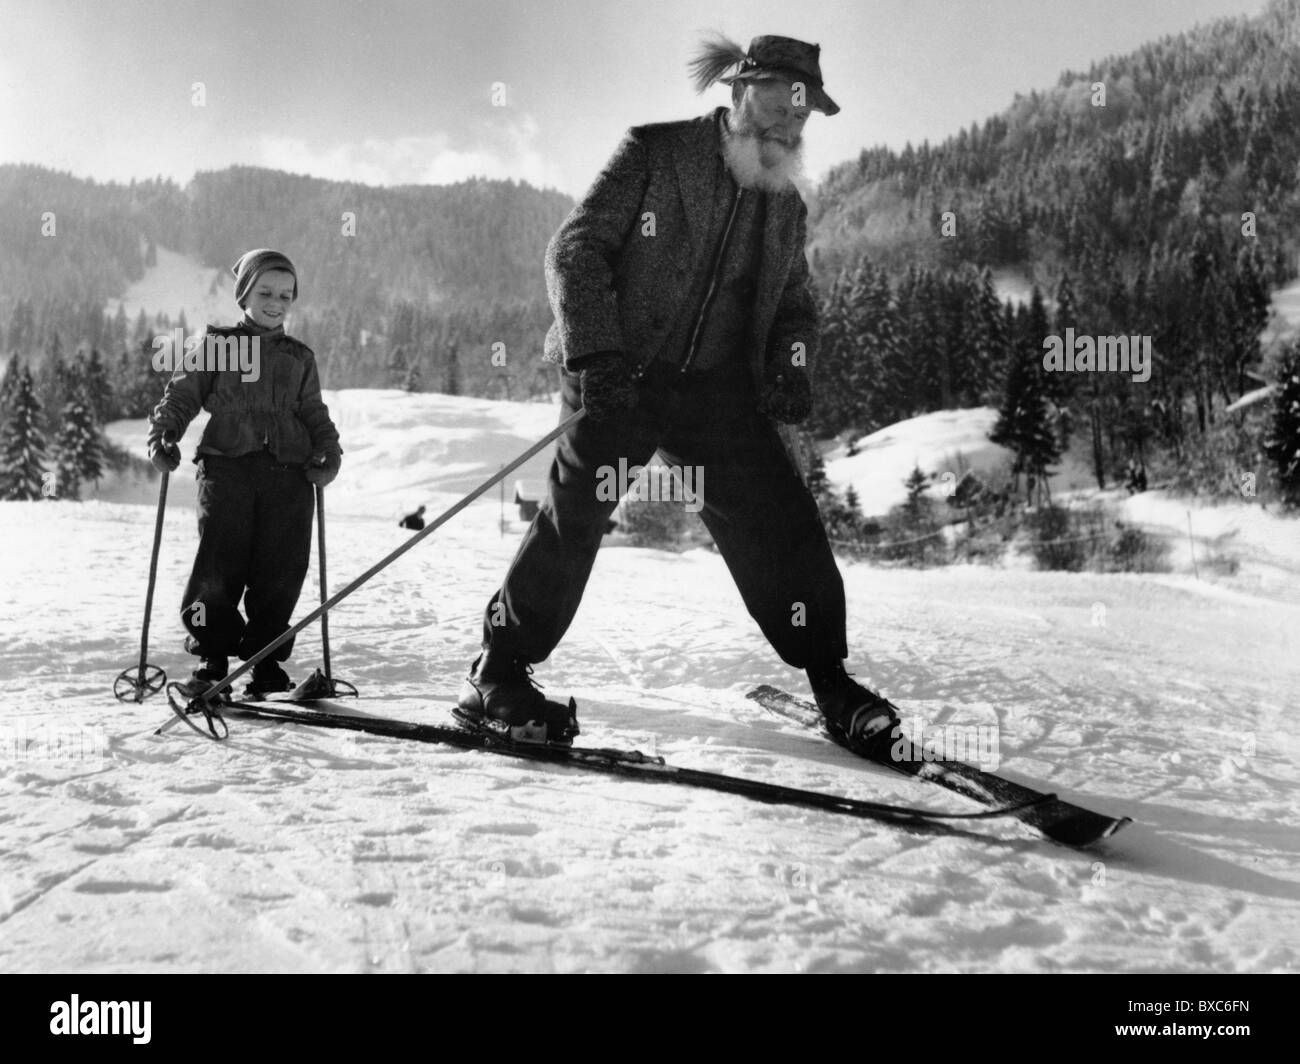 sports winter sports skiing old man with child practice skiing stock photo royalty free. Black Bedroom Furniture Sets. Home Design Ideas